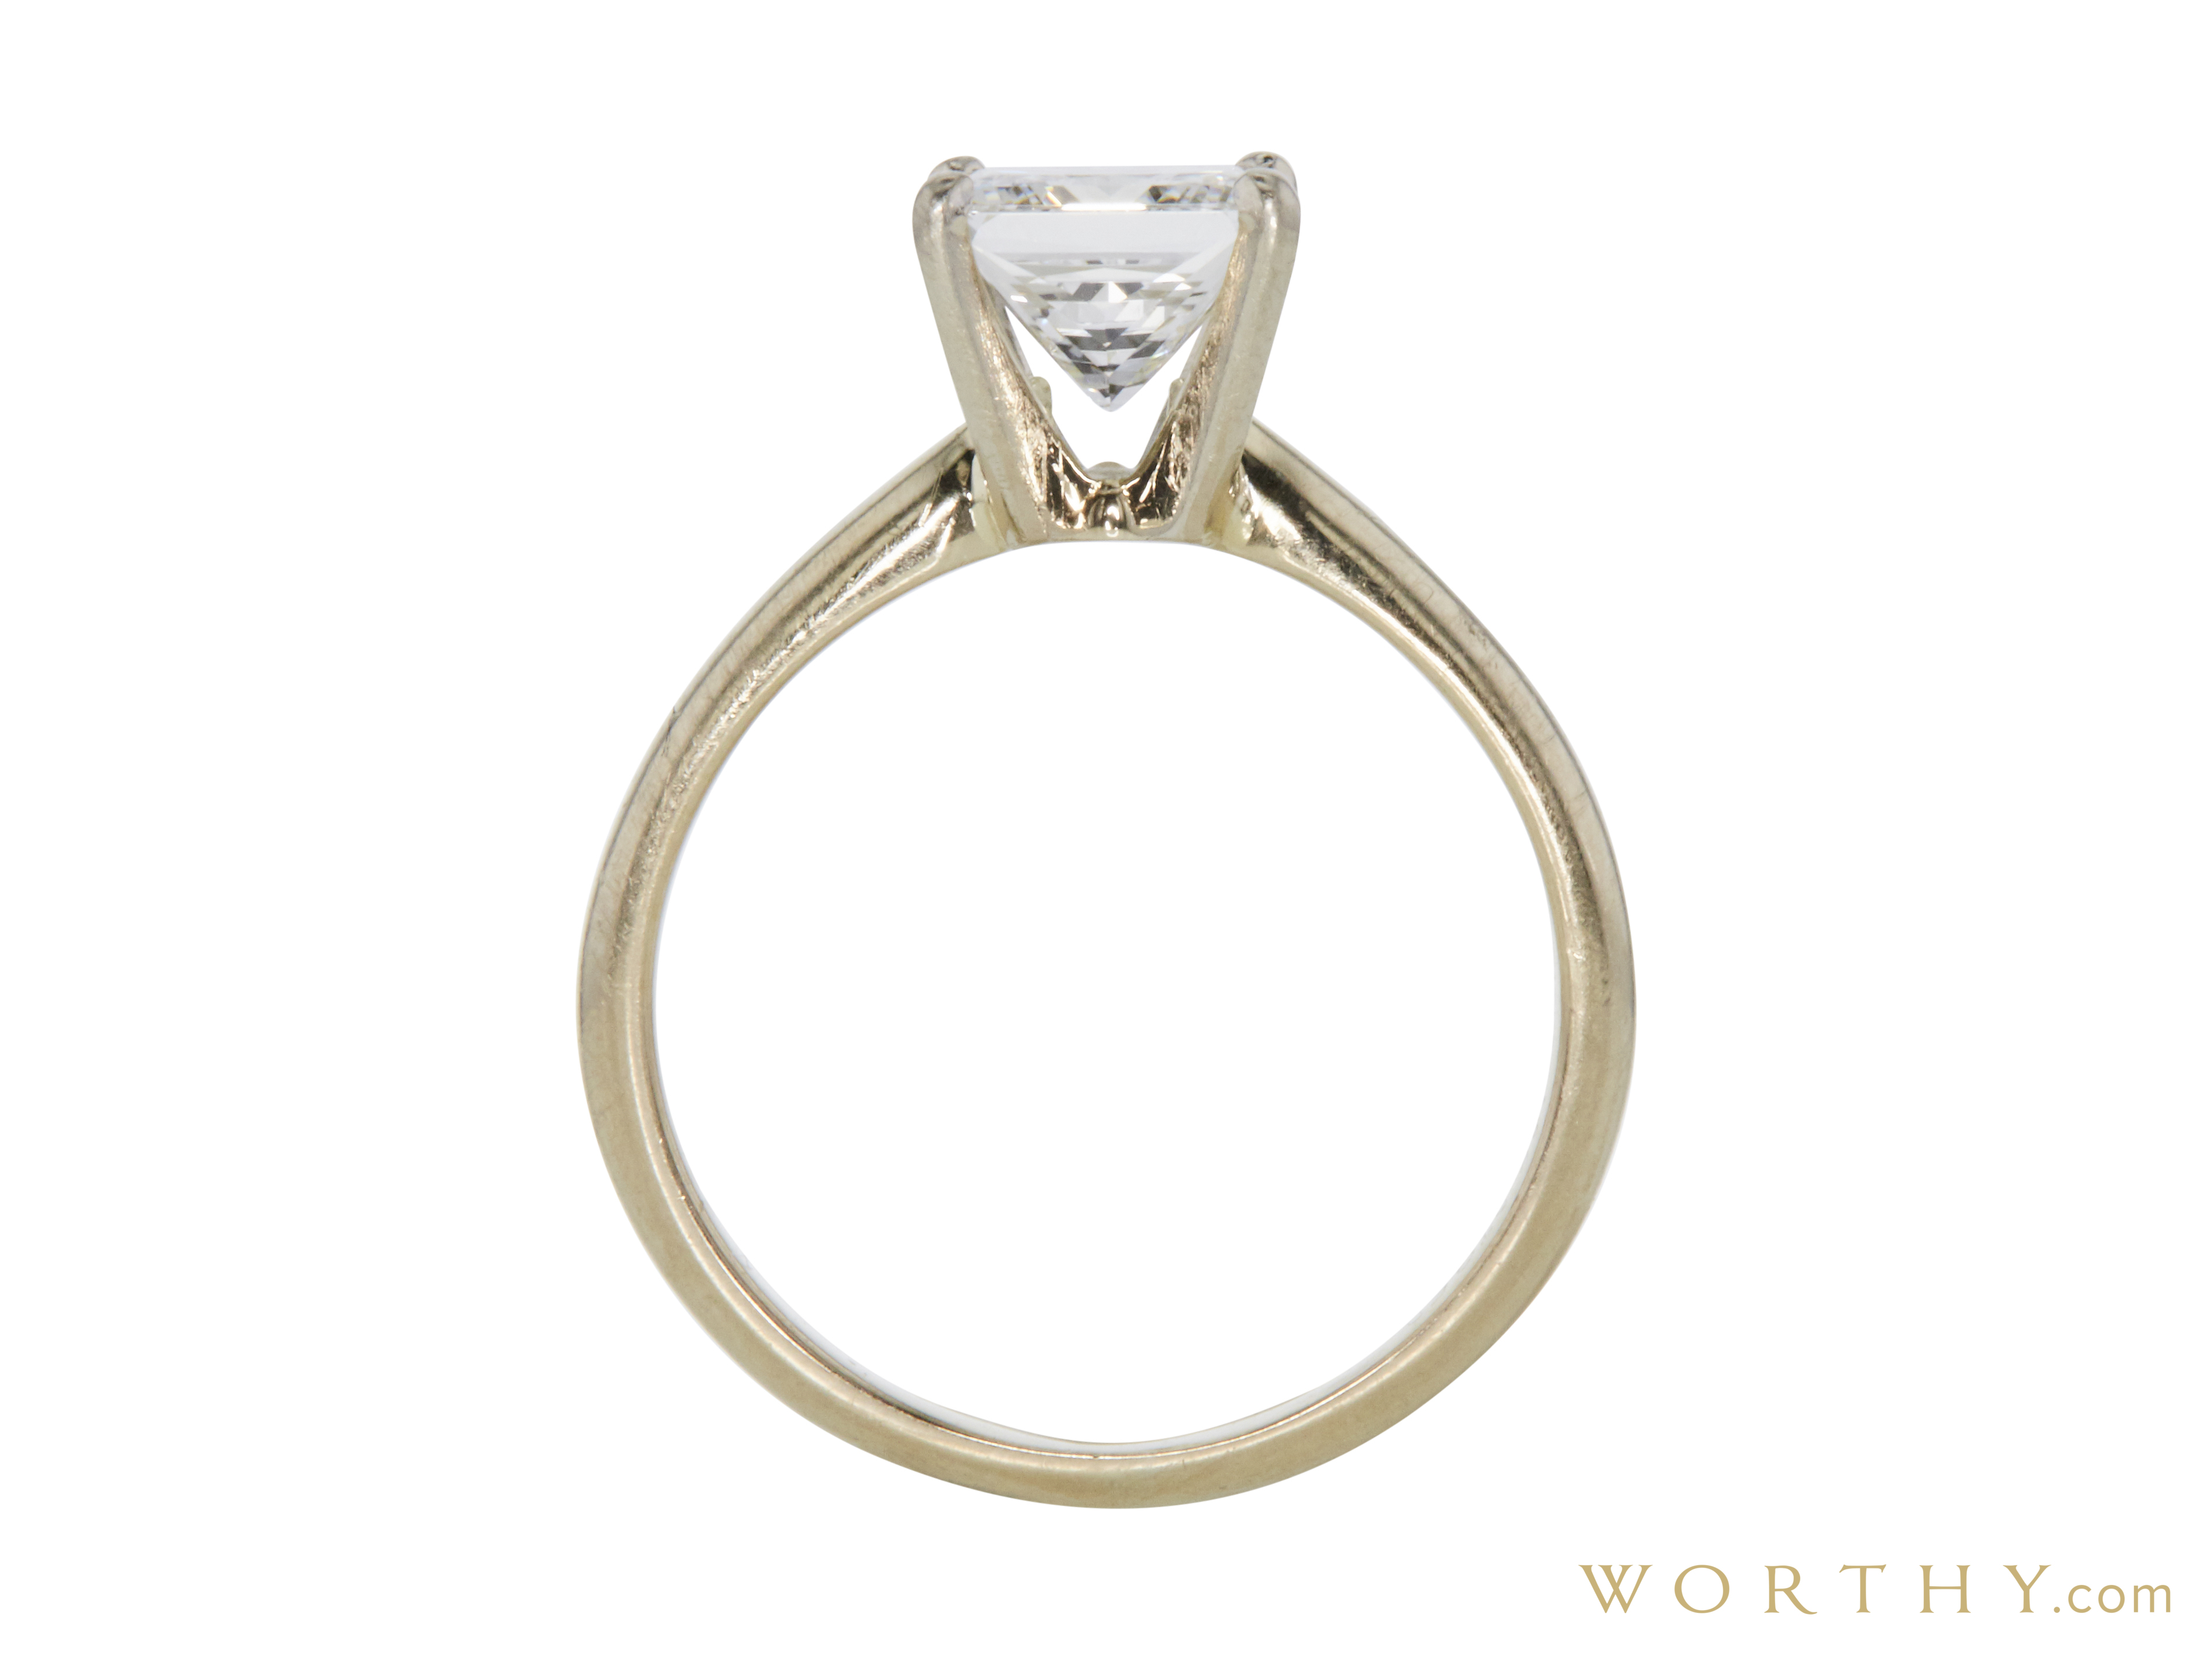 1.21 ct. Princess Cut Solitaire Ring | Sold For $2,503